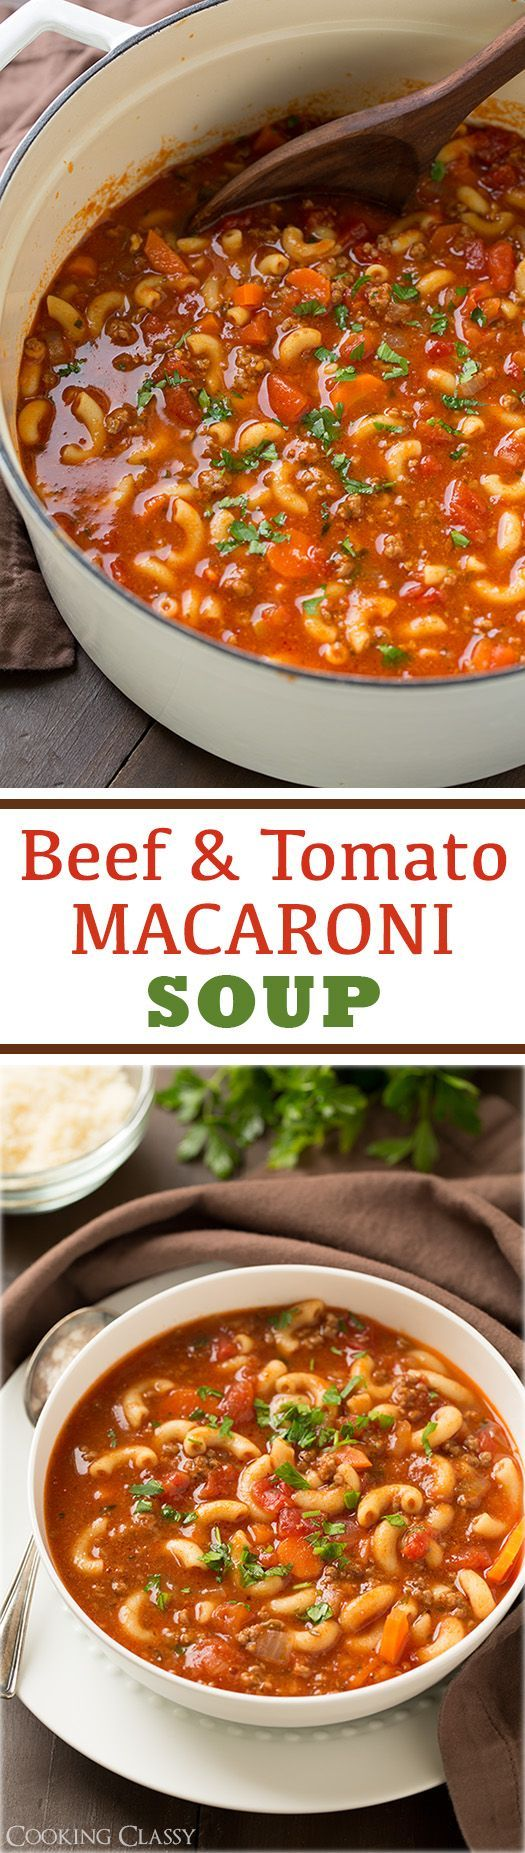 soup recipes the beef beef broth mom tomato soups classy cooking the ...